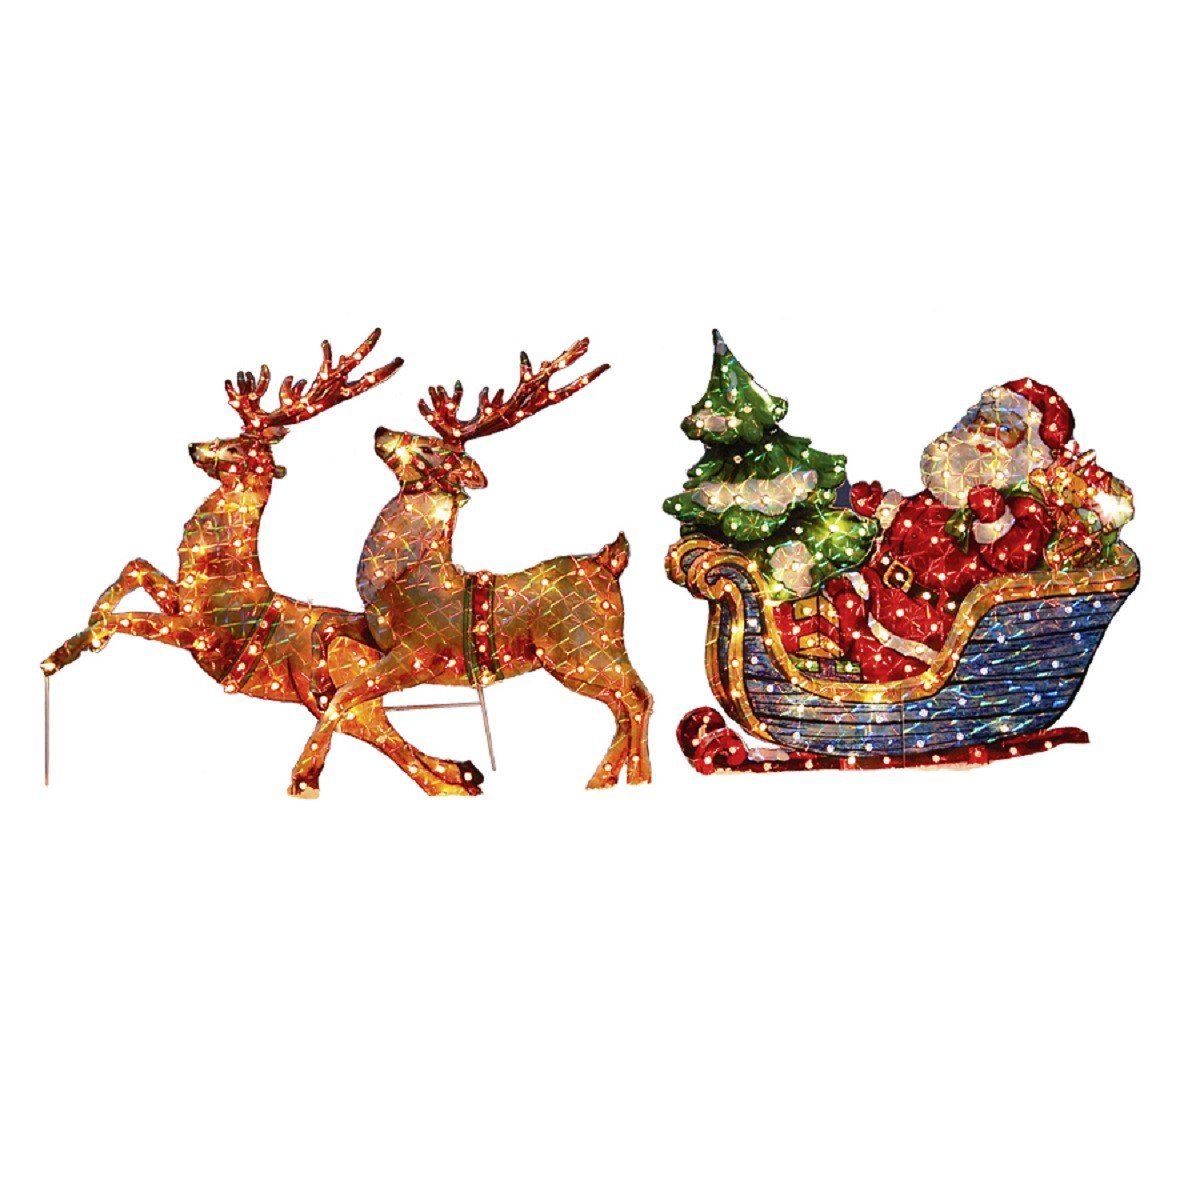 Holiday Traditional Holographic Bright Lighted Multicolored Santa In Sleigh W/Reindeer Majestic Outdoor Sculpture Decoration